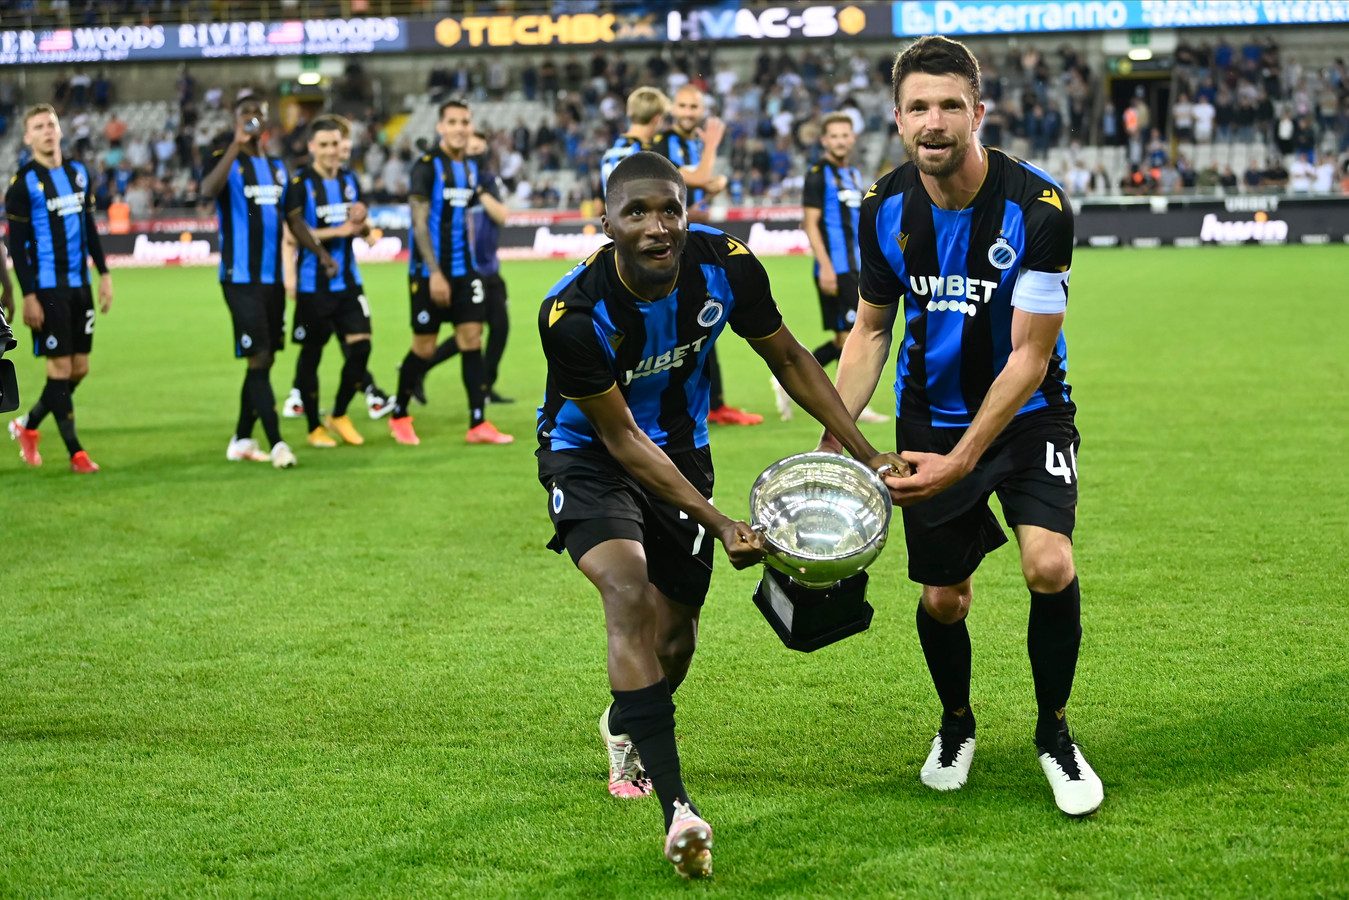 BRUGGE, BELGIUM - JULY 17 : Clinton Mata defender of Club Brugge and Brandon Mechele defender of Club Brugge celebrating winning the Supercup during the Pro League Supercup match between Club Brugge and KRC Genk at the Jan Breydel stadium on July 17, 2021 in Brugge, Belgium, 17/07/2021 ( Photo by Nico Vereecken / Photo News  (Pro League Supercup, is a Belgian club competition played as a single match at the beginning of the saison between the Belgian First Division champions and the Belgian Cup winners)